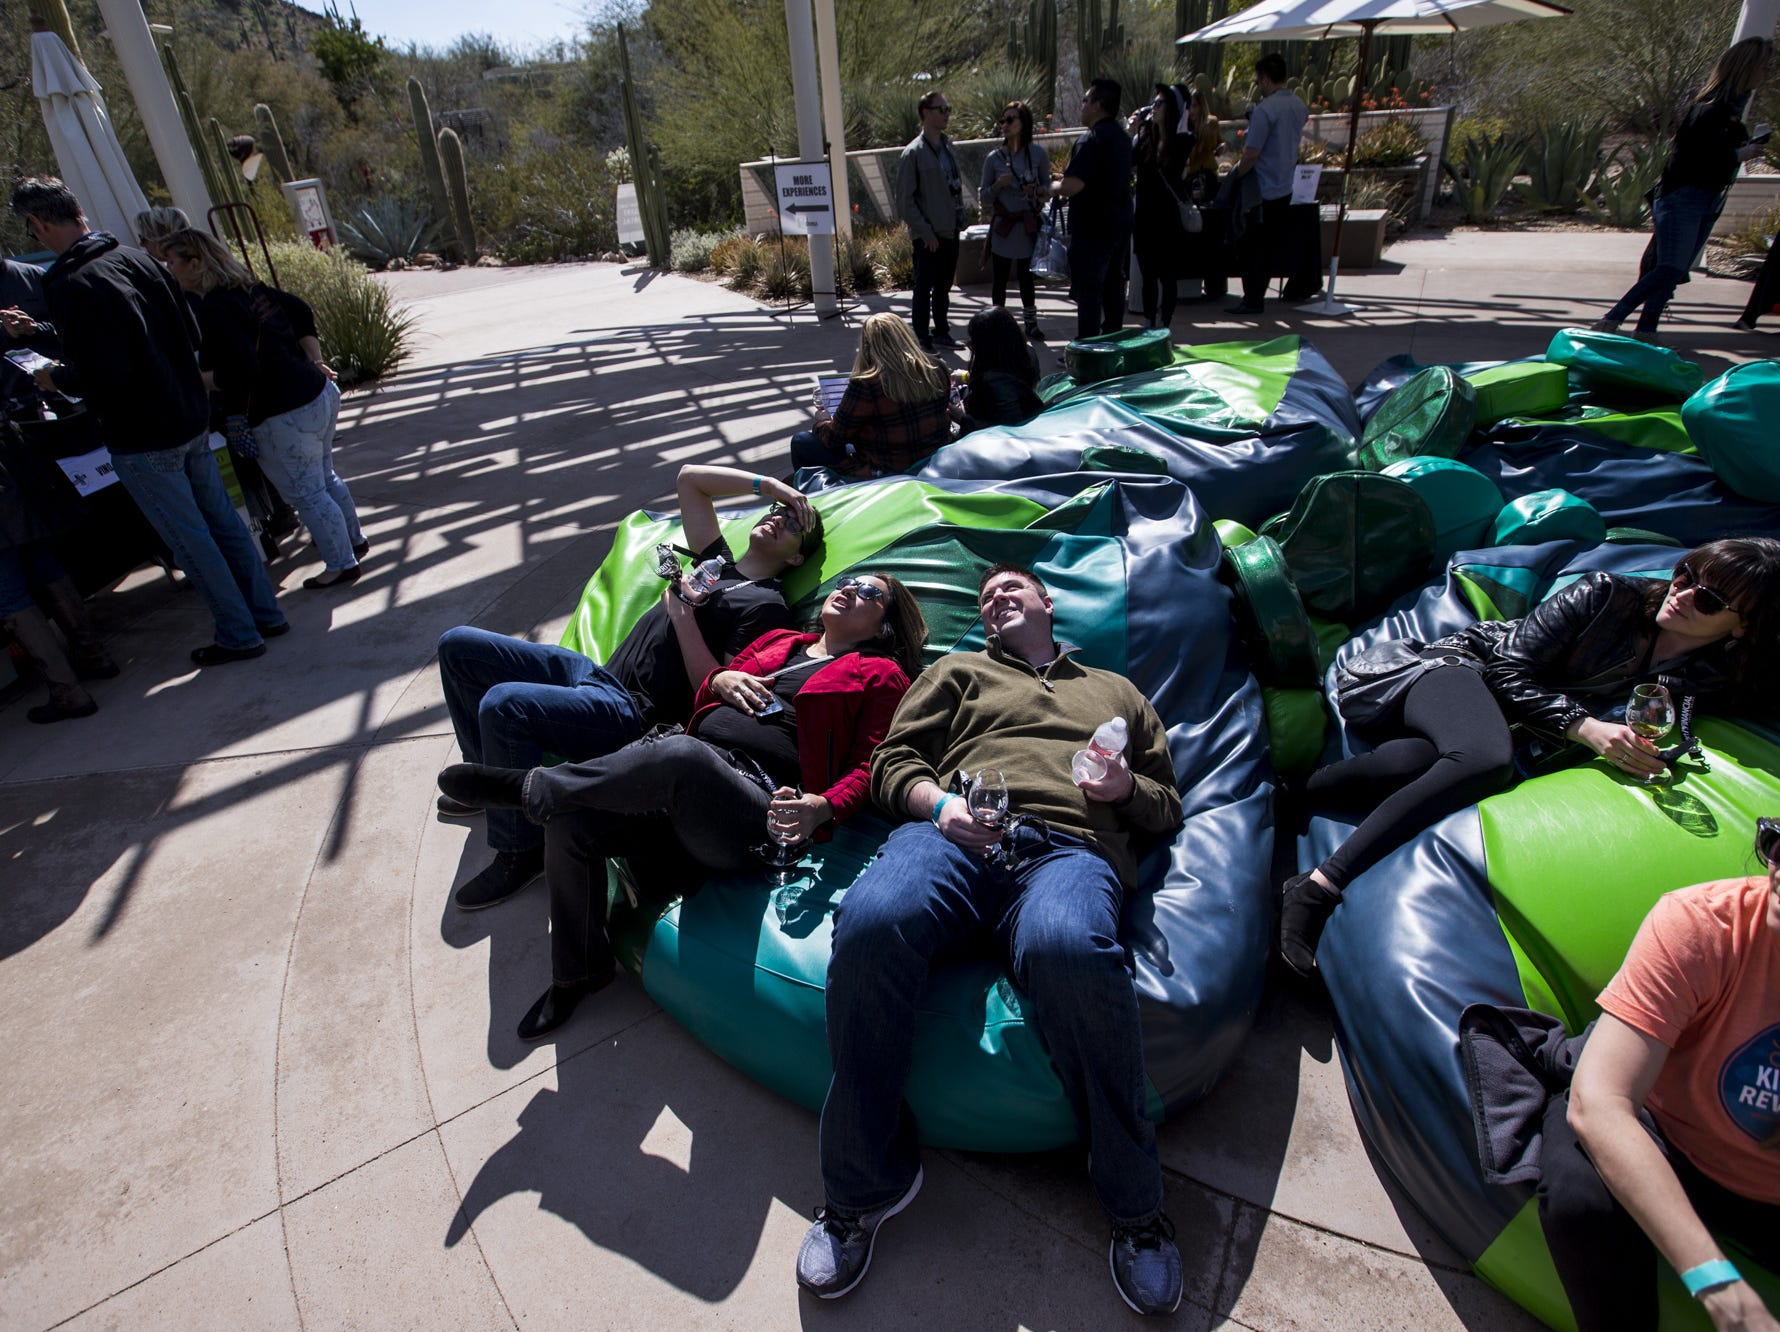 People relax on cushions during Day 1 of the Devour Culinary Classic on Saturday, Feb. 23, 2019, at Desert Botanical Garden in Phoenix.